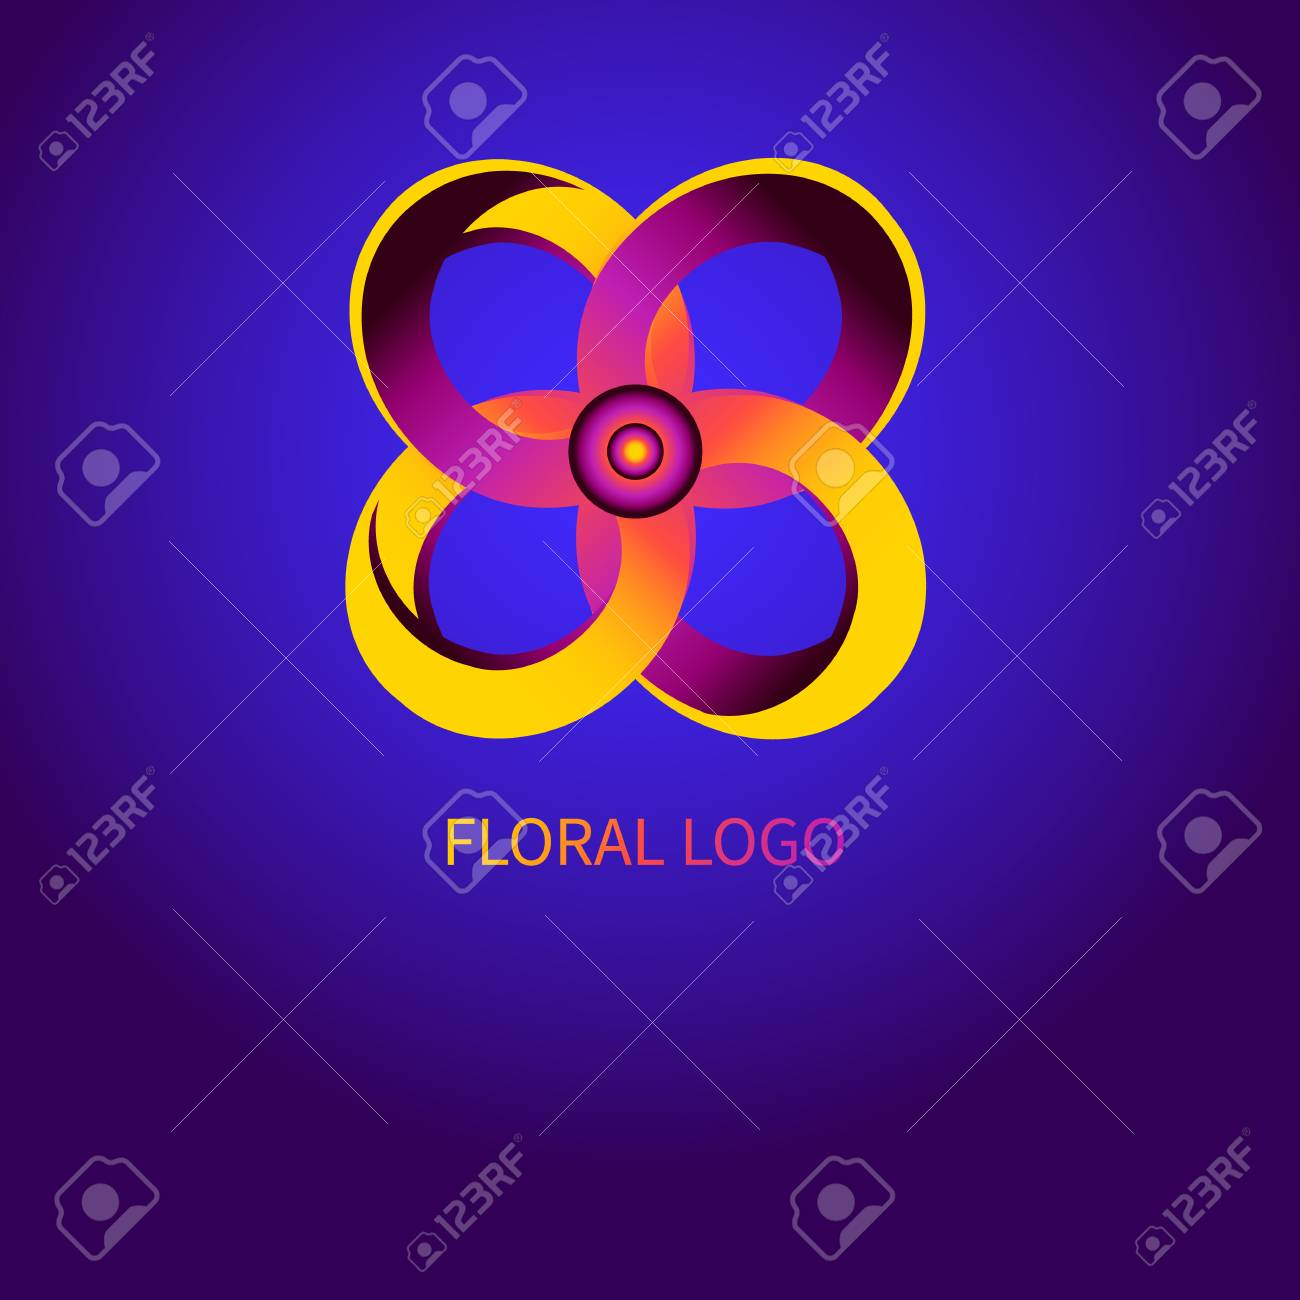 Abstract gradient flower logo, icon for ordering online  Banner